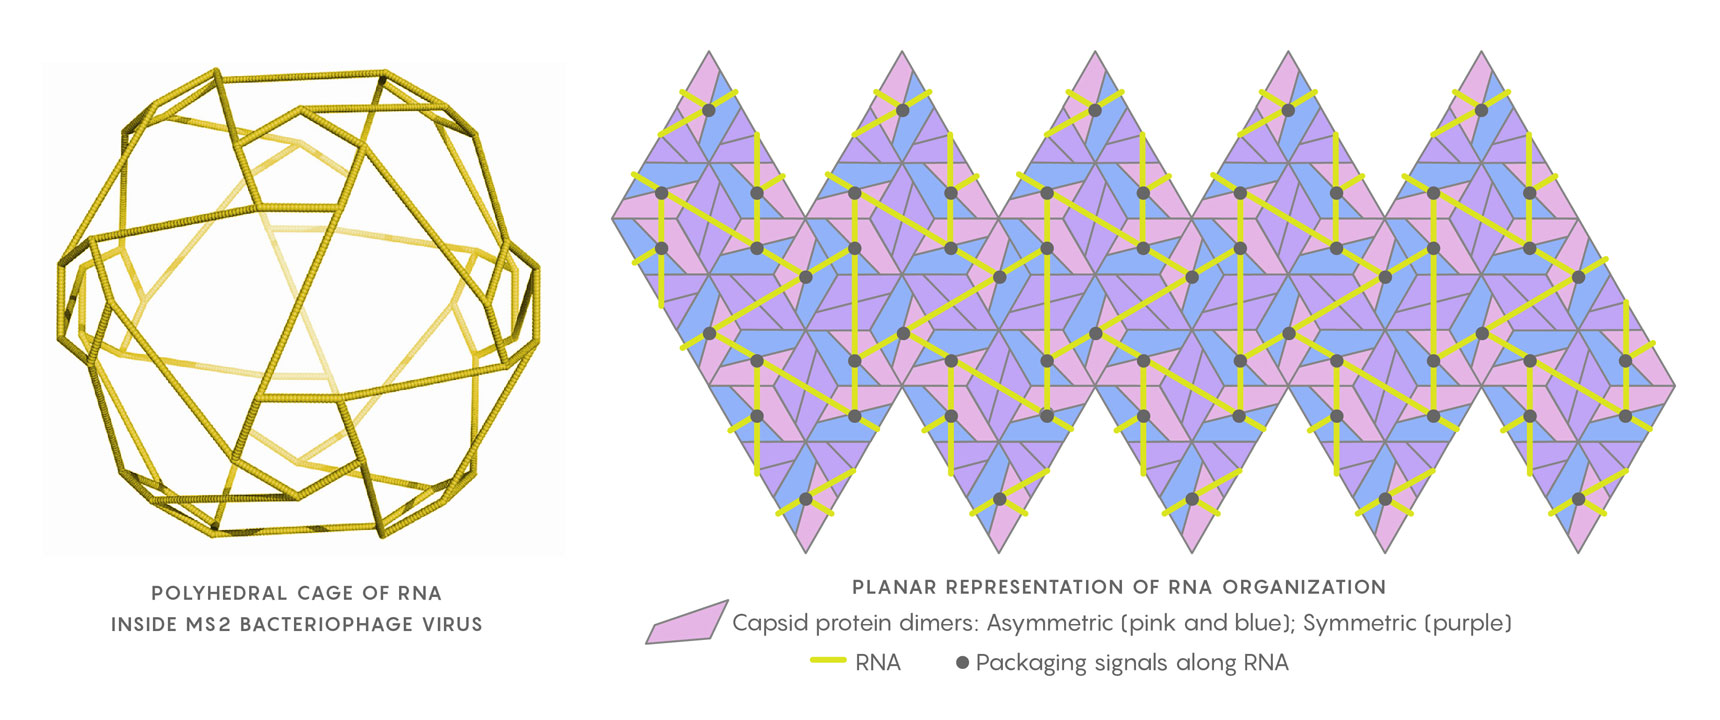 The genomic RNA of the MS2 virus, when close to the capsid shell, arranges itself as a polyhedral cage (at left). In the planar representation at right, the relative positions of the RNA packaging signals (black points) in contact with the capsid's protein building blocks are shown. Twarock uses Hamiltonian paths along segments of the RNA (yellow) to help determine the virus's assembly mechanism.